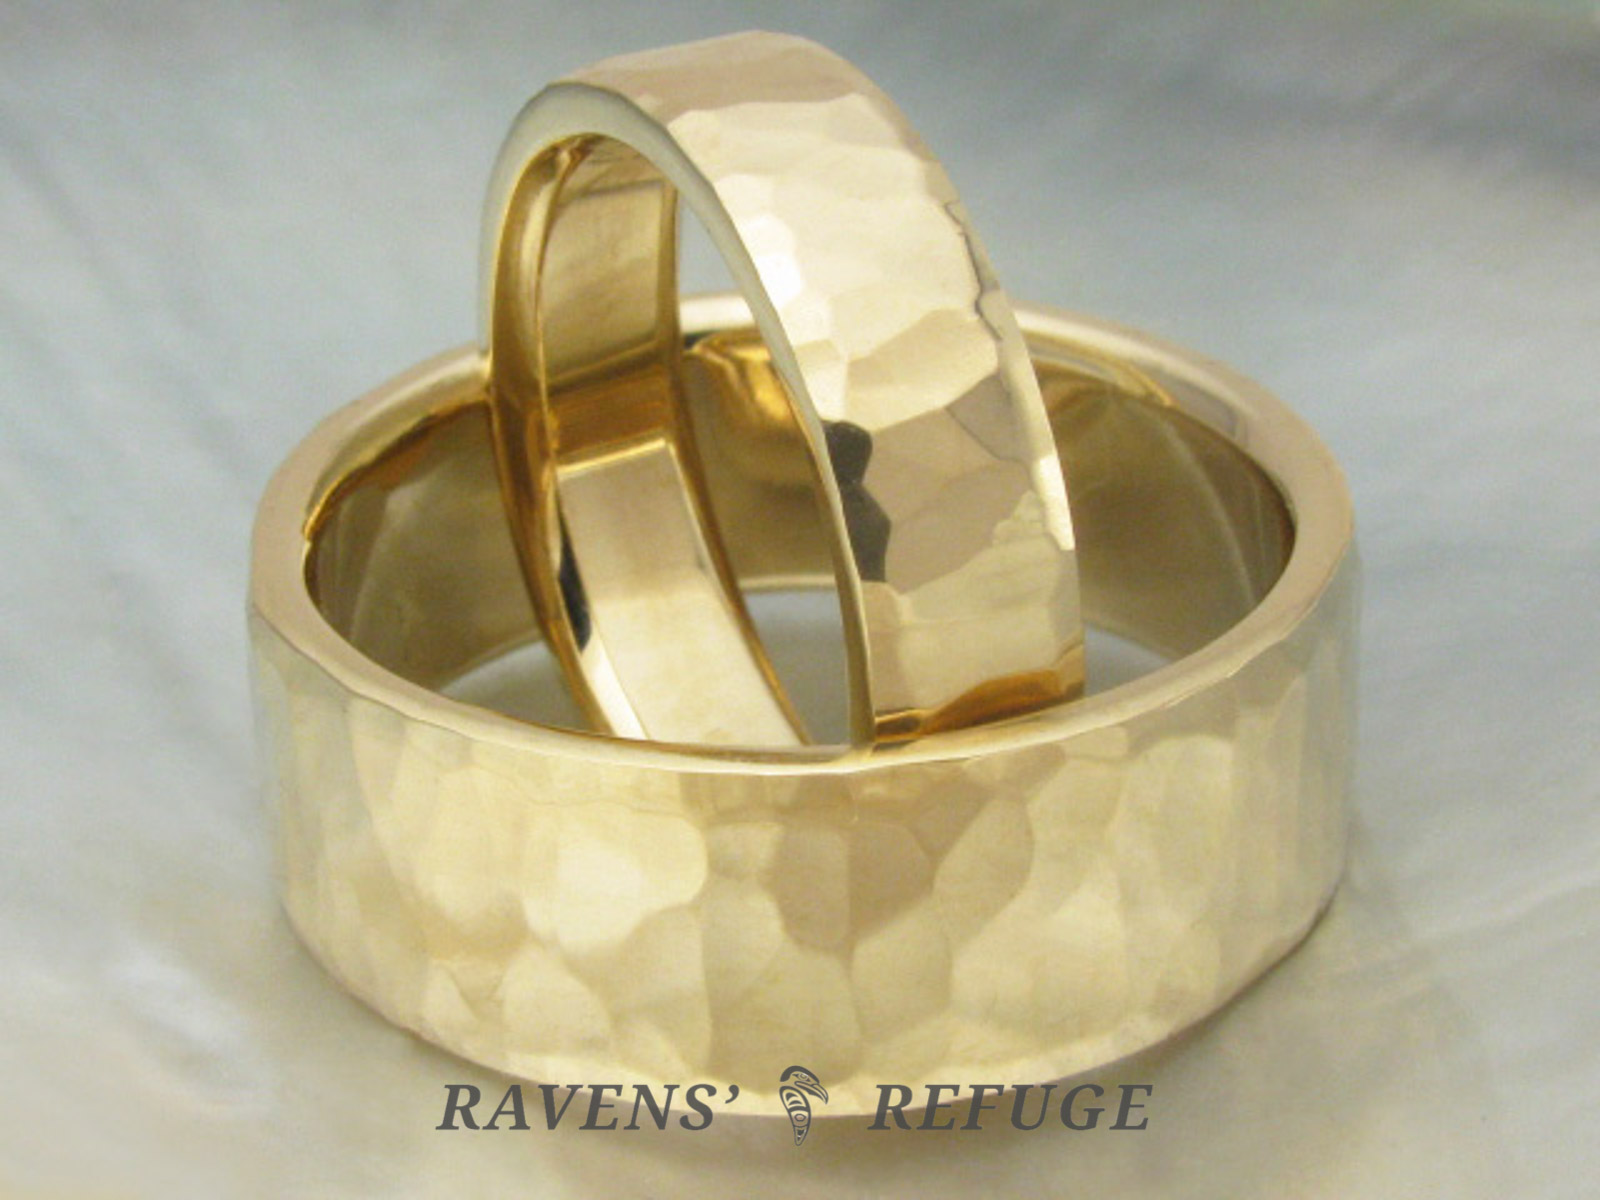 Handmade Wedding Bands Hammered Gold Rings Ravens Refuge